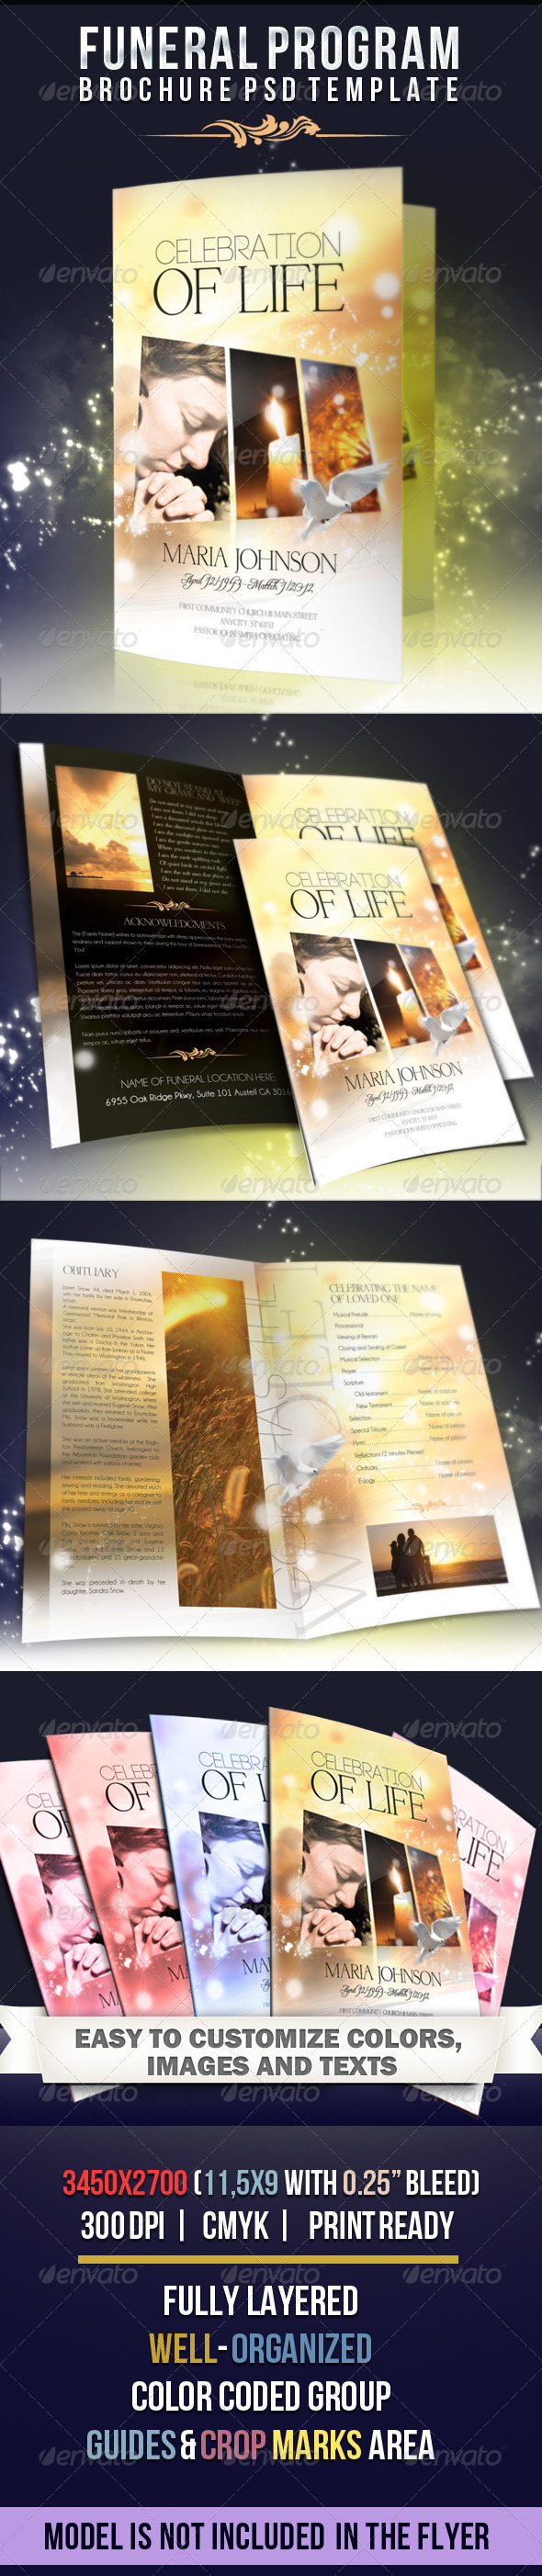 GraphicRiver Celebration of life Funeral Program Brochure Template 2549525